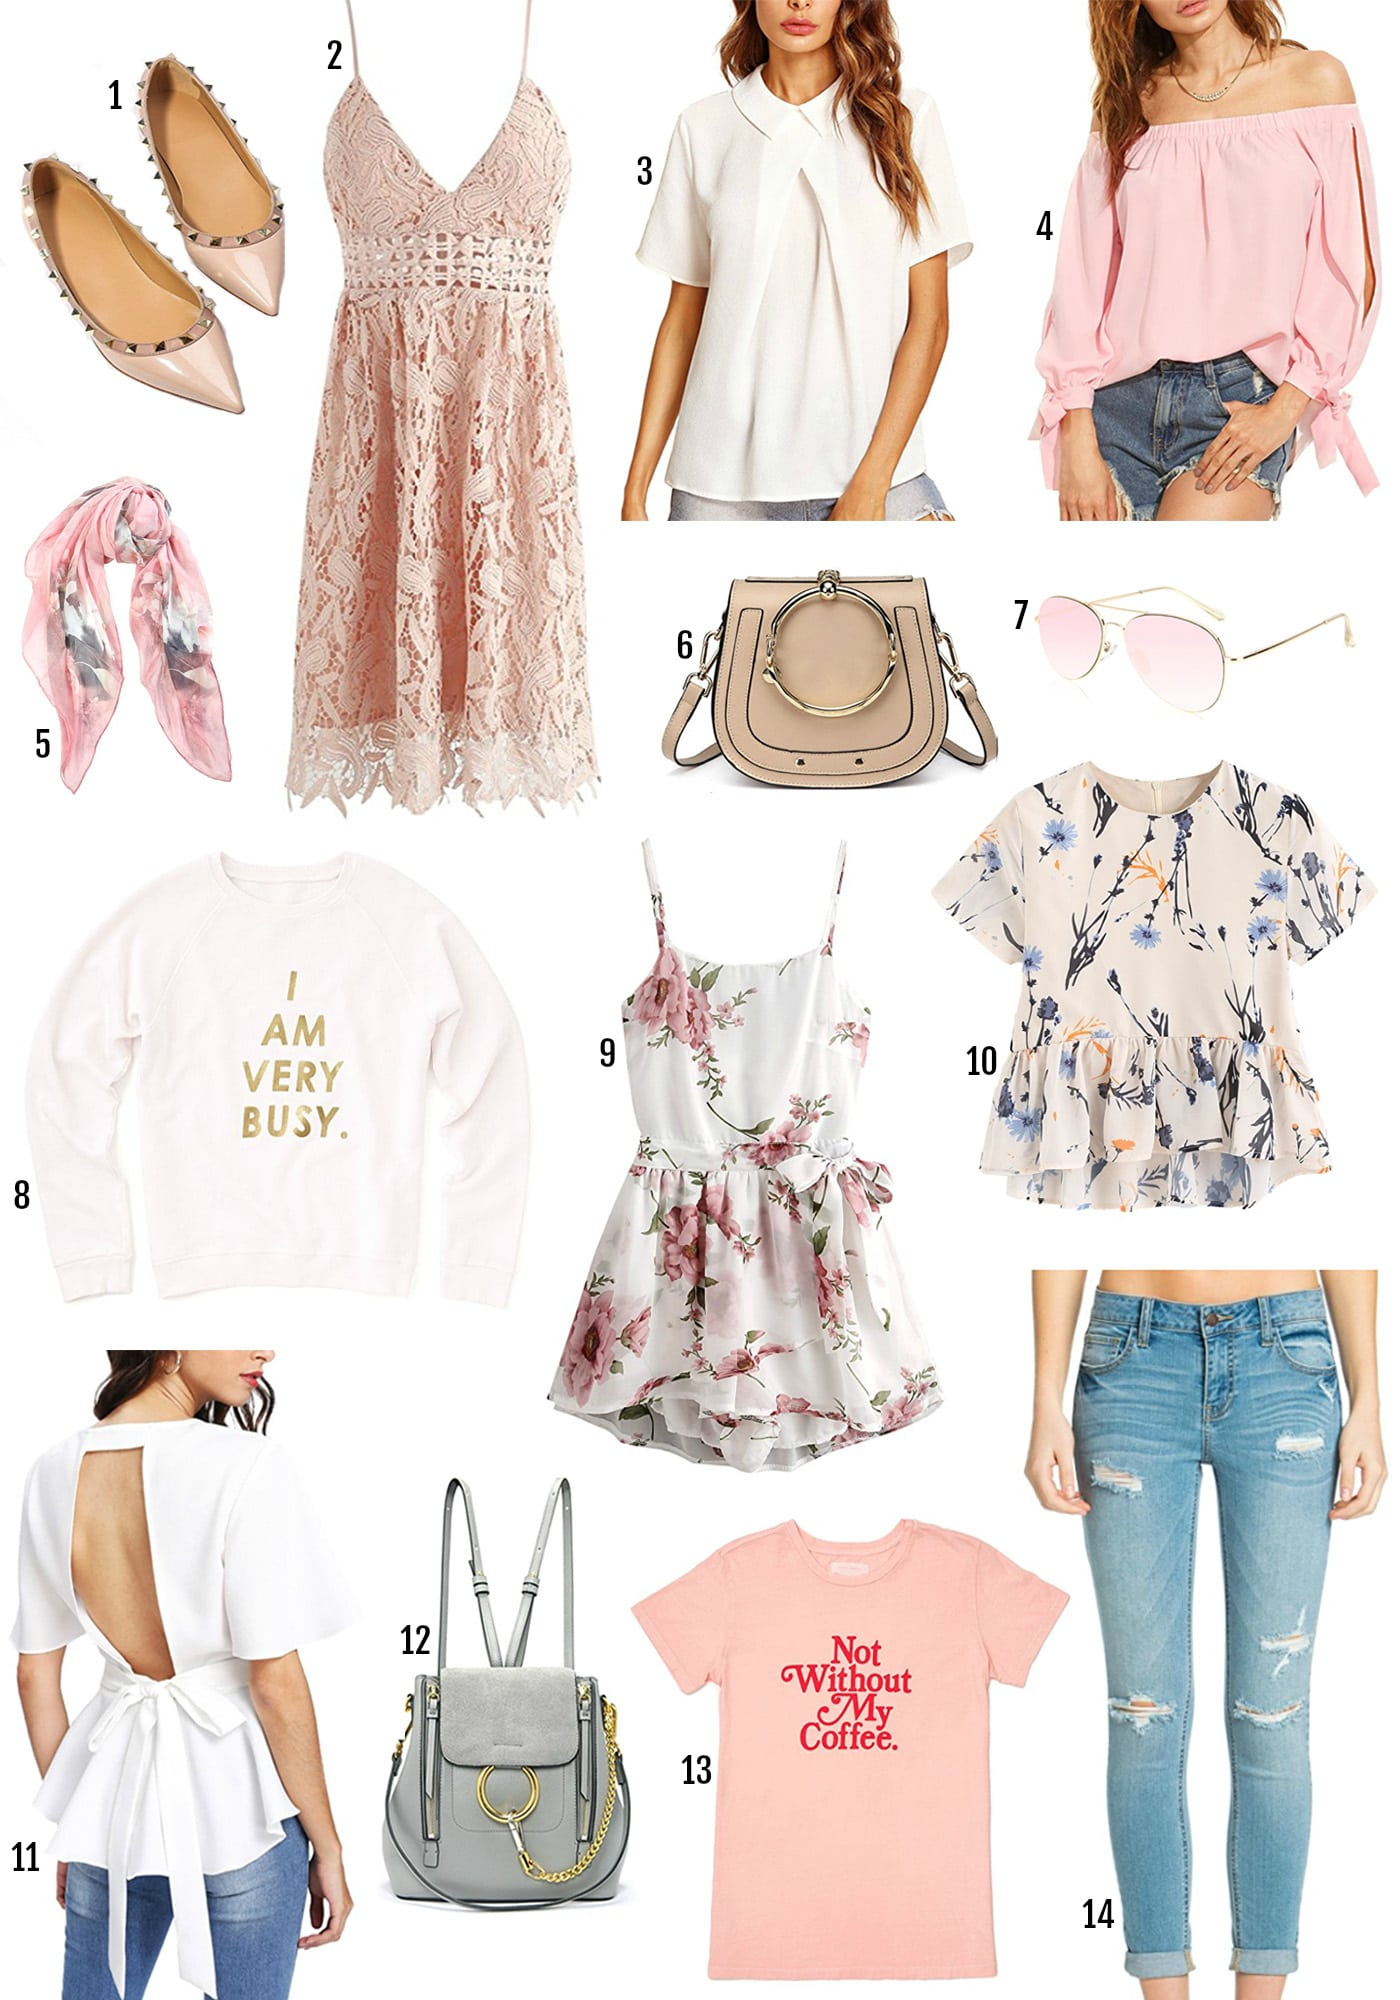 Amazon Spring Fashion Finds | Amazon Fashion | Amazon Sale | Mash Elle style blogger | summer fashion | flats | summer dress